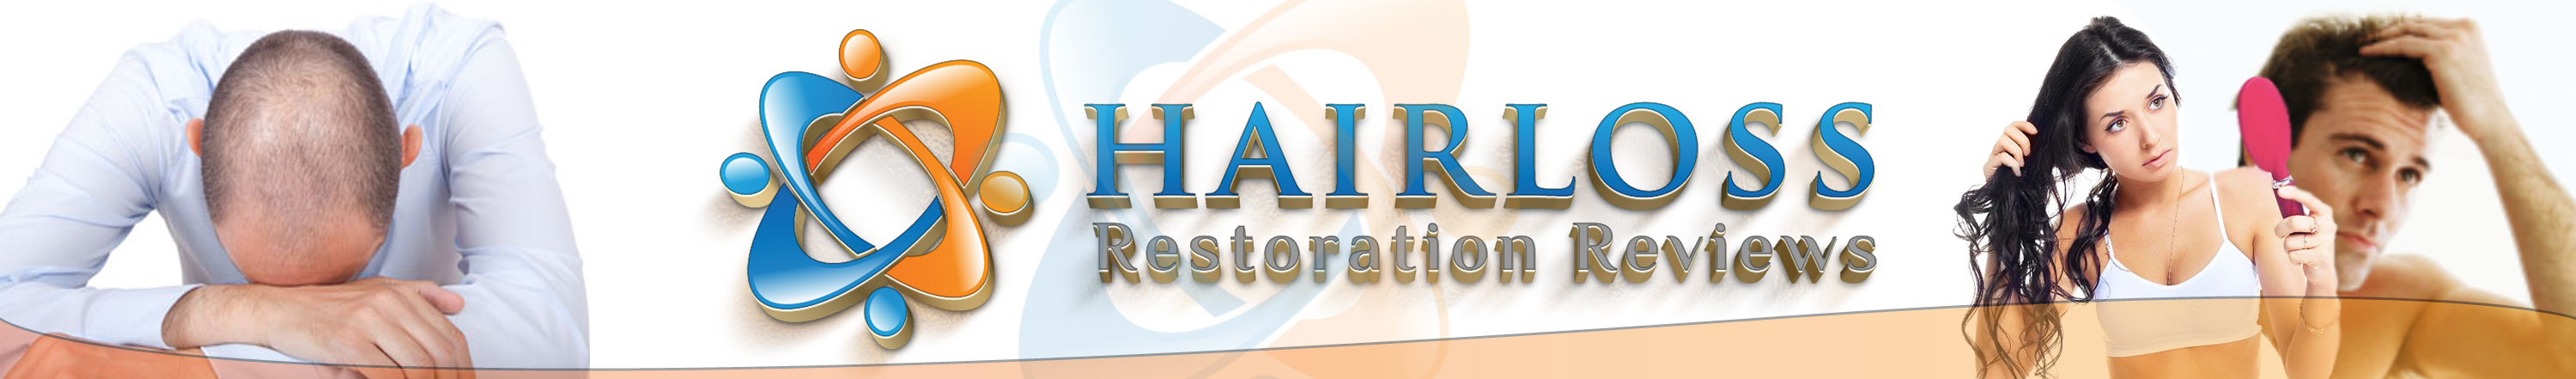 Hairloss Restoration Reviews